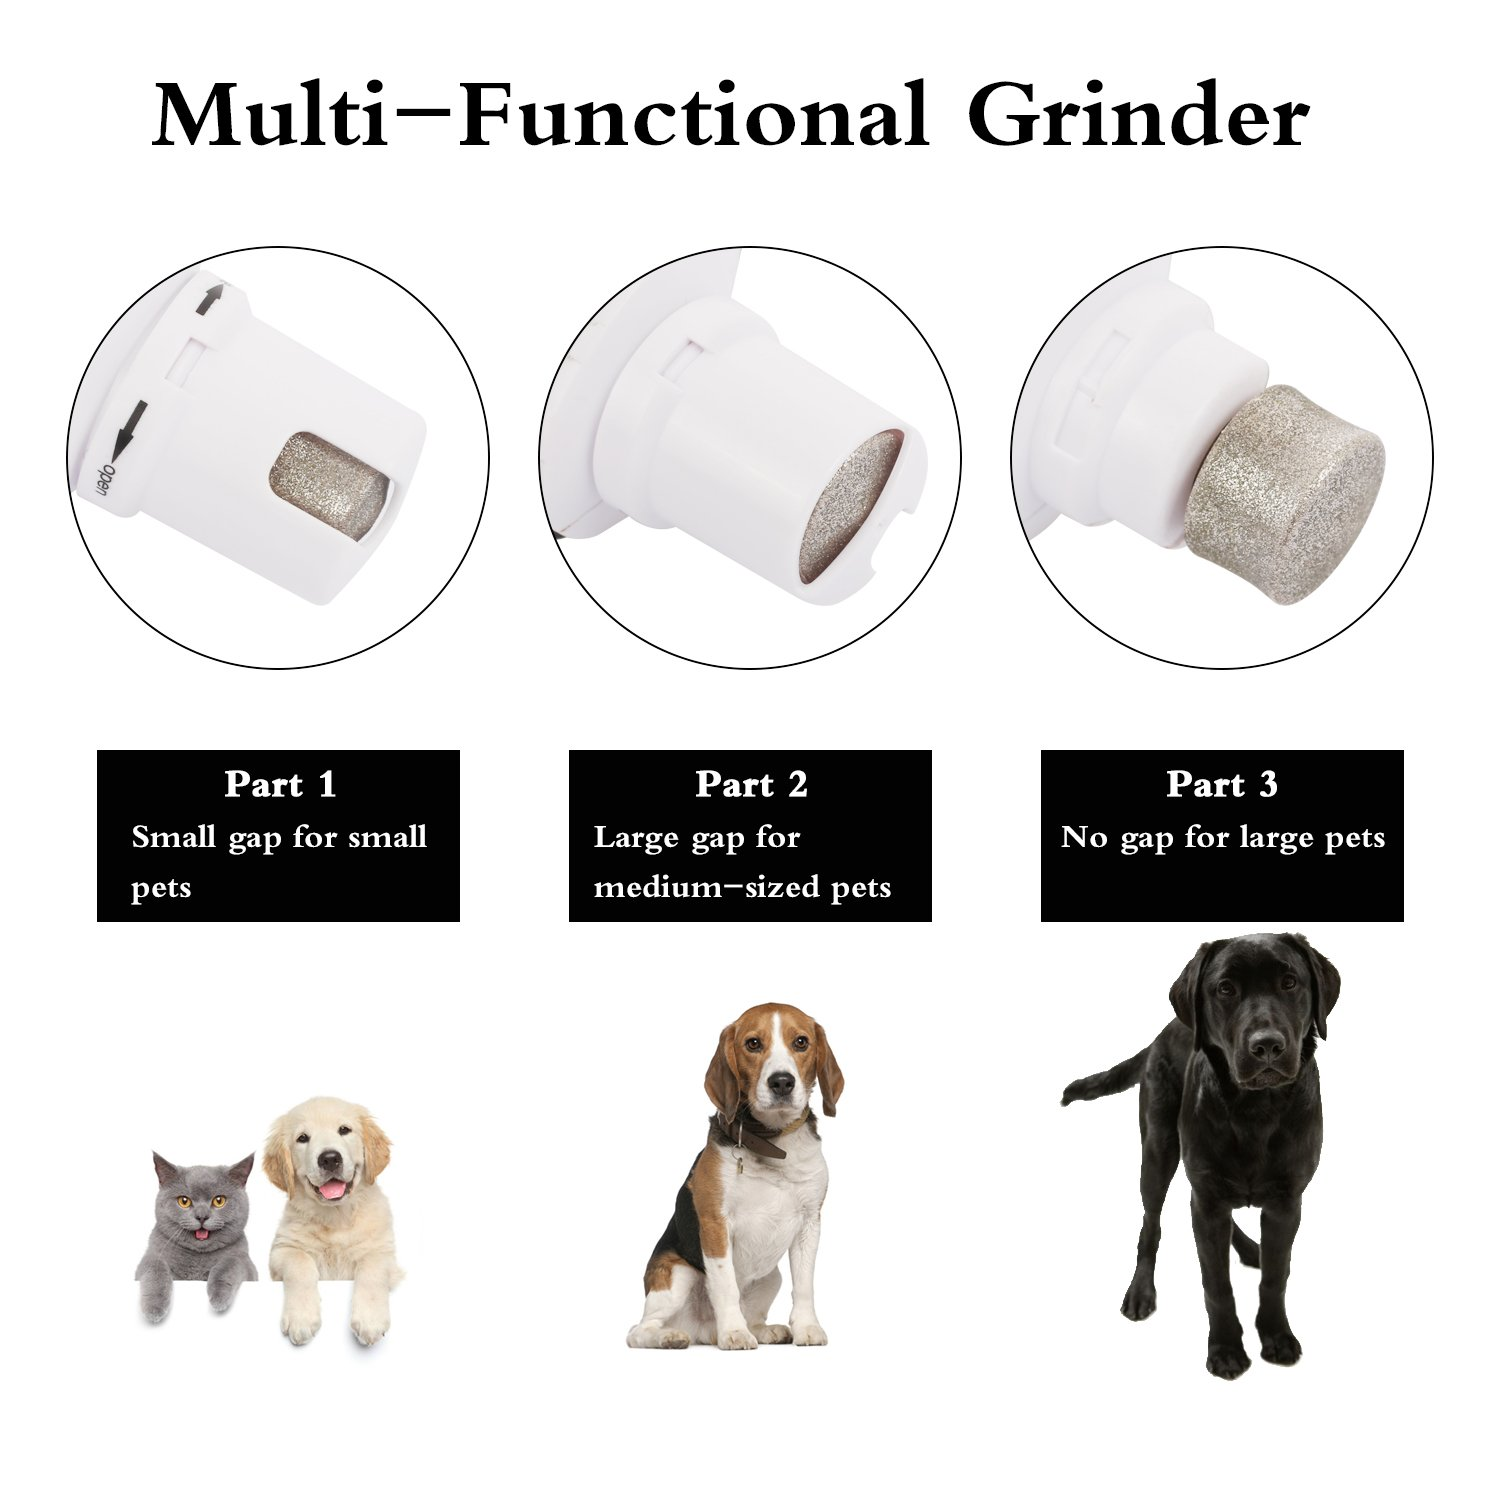 Pecute Dog Nail Grinder Safety 2 Speed 6800 RPM Powerful Motor, 240 Minutes Battery Life, Less Than 50dB Ultra Quiet